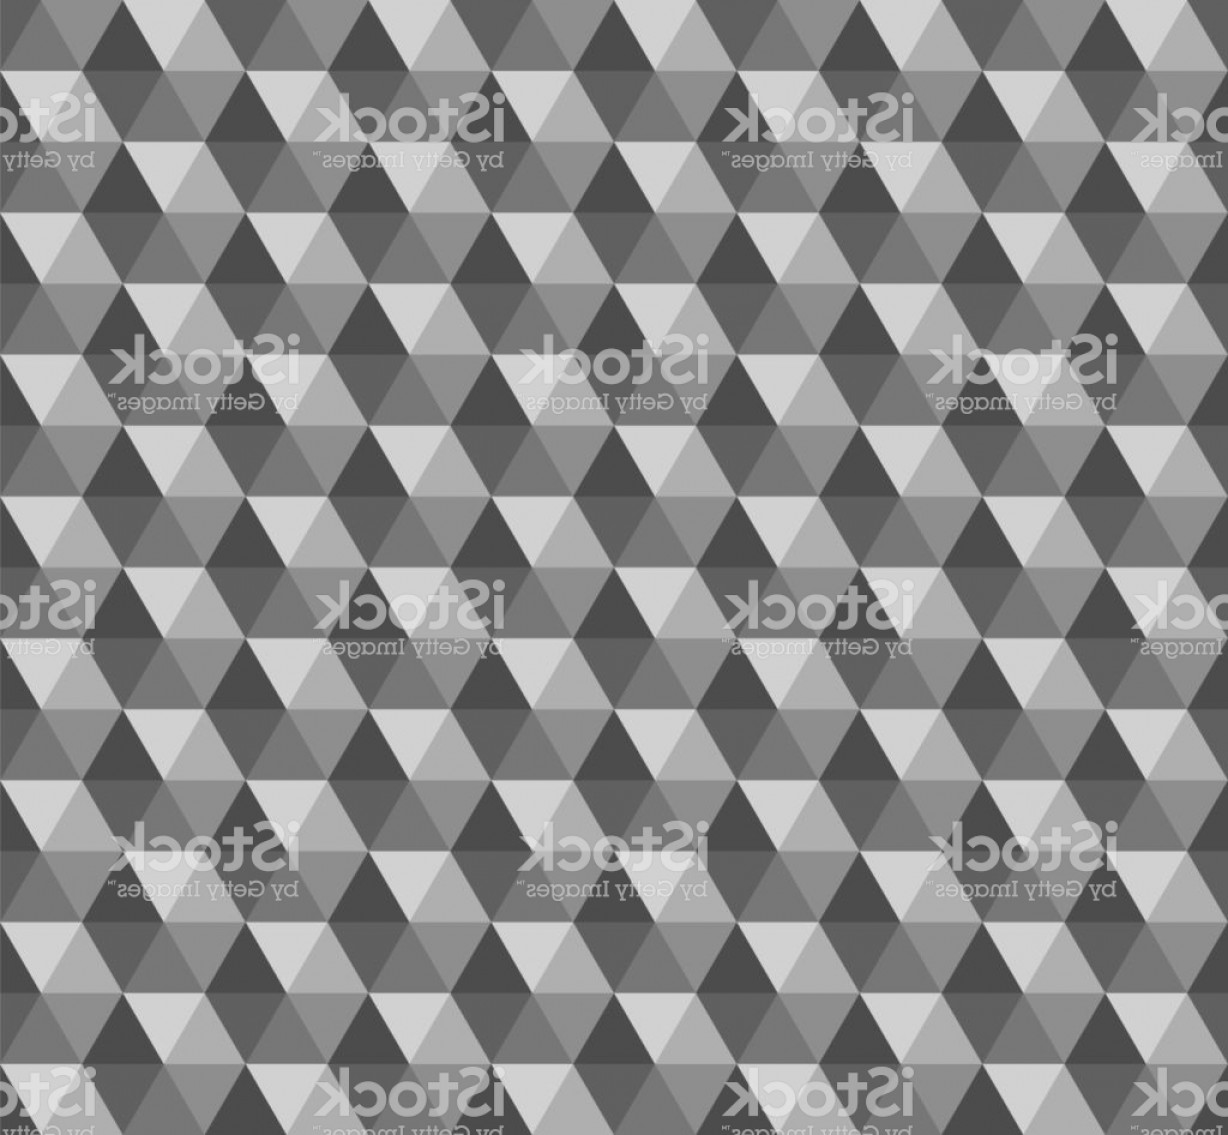 Pyramid Stud Vector: Gray Pyramid Vector Seamless Pattern With Triangles White Geometric Background Gm